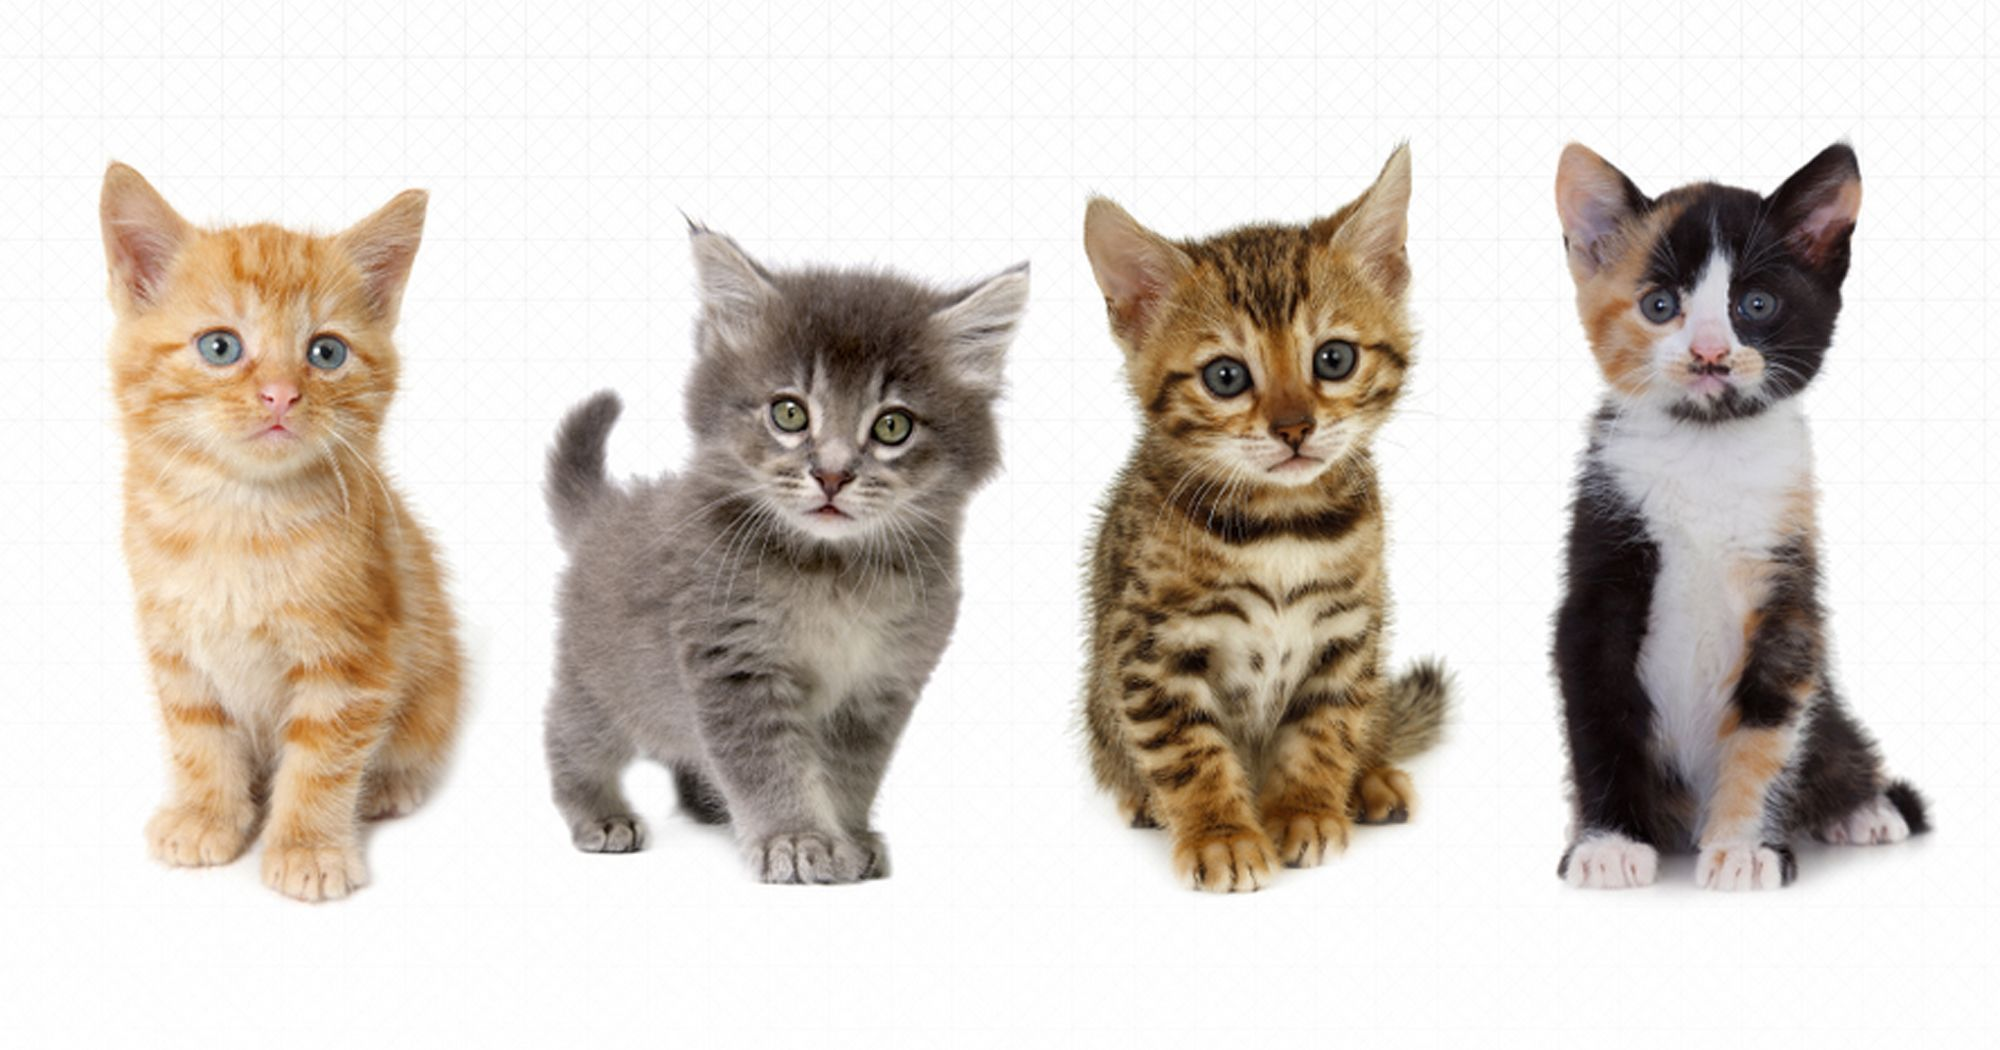 You Can Now Order Kittens With Uber National cat day